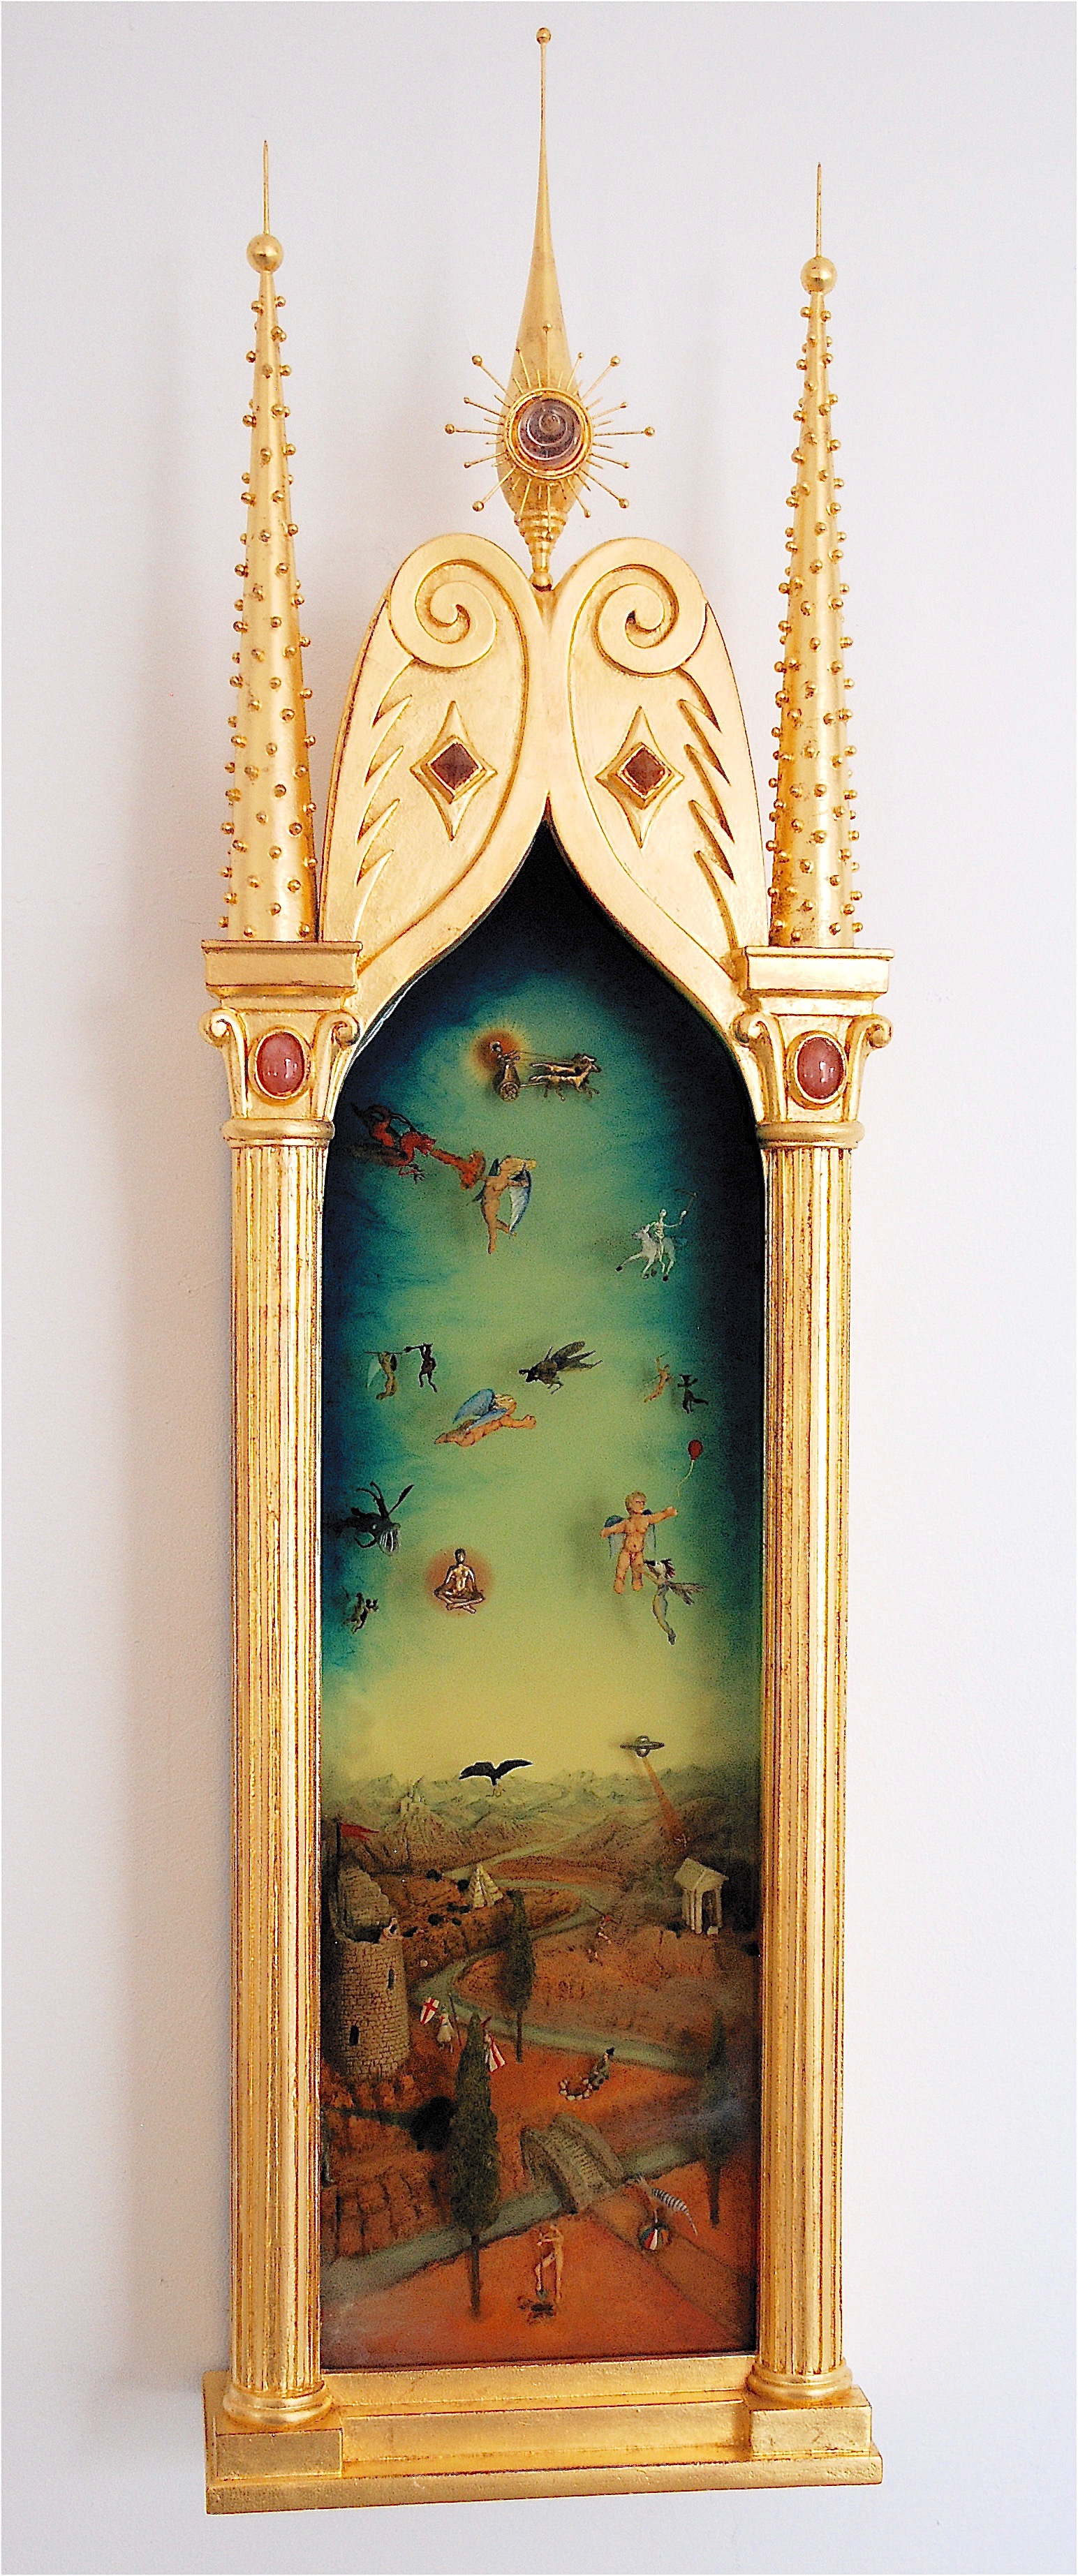 """Thomas Coffin - Battle Between Good and the Extremely Annoying, 42""""h x 12""""w x 5""""d, mixed media 3-d diorama encased in acrylic resin, handmade wood frame, 23 kt. gold leaf"""